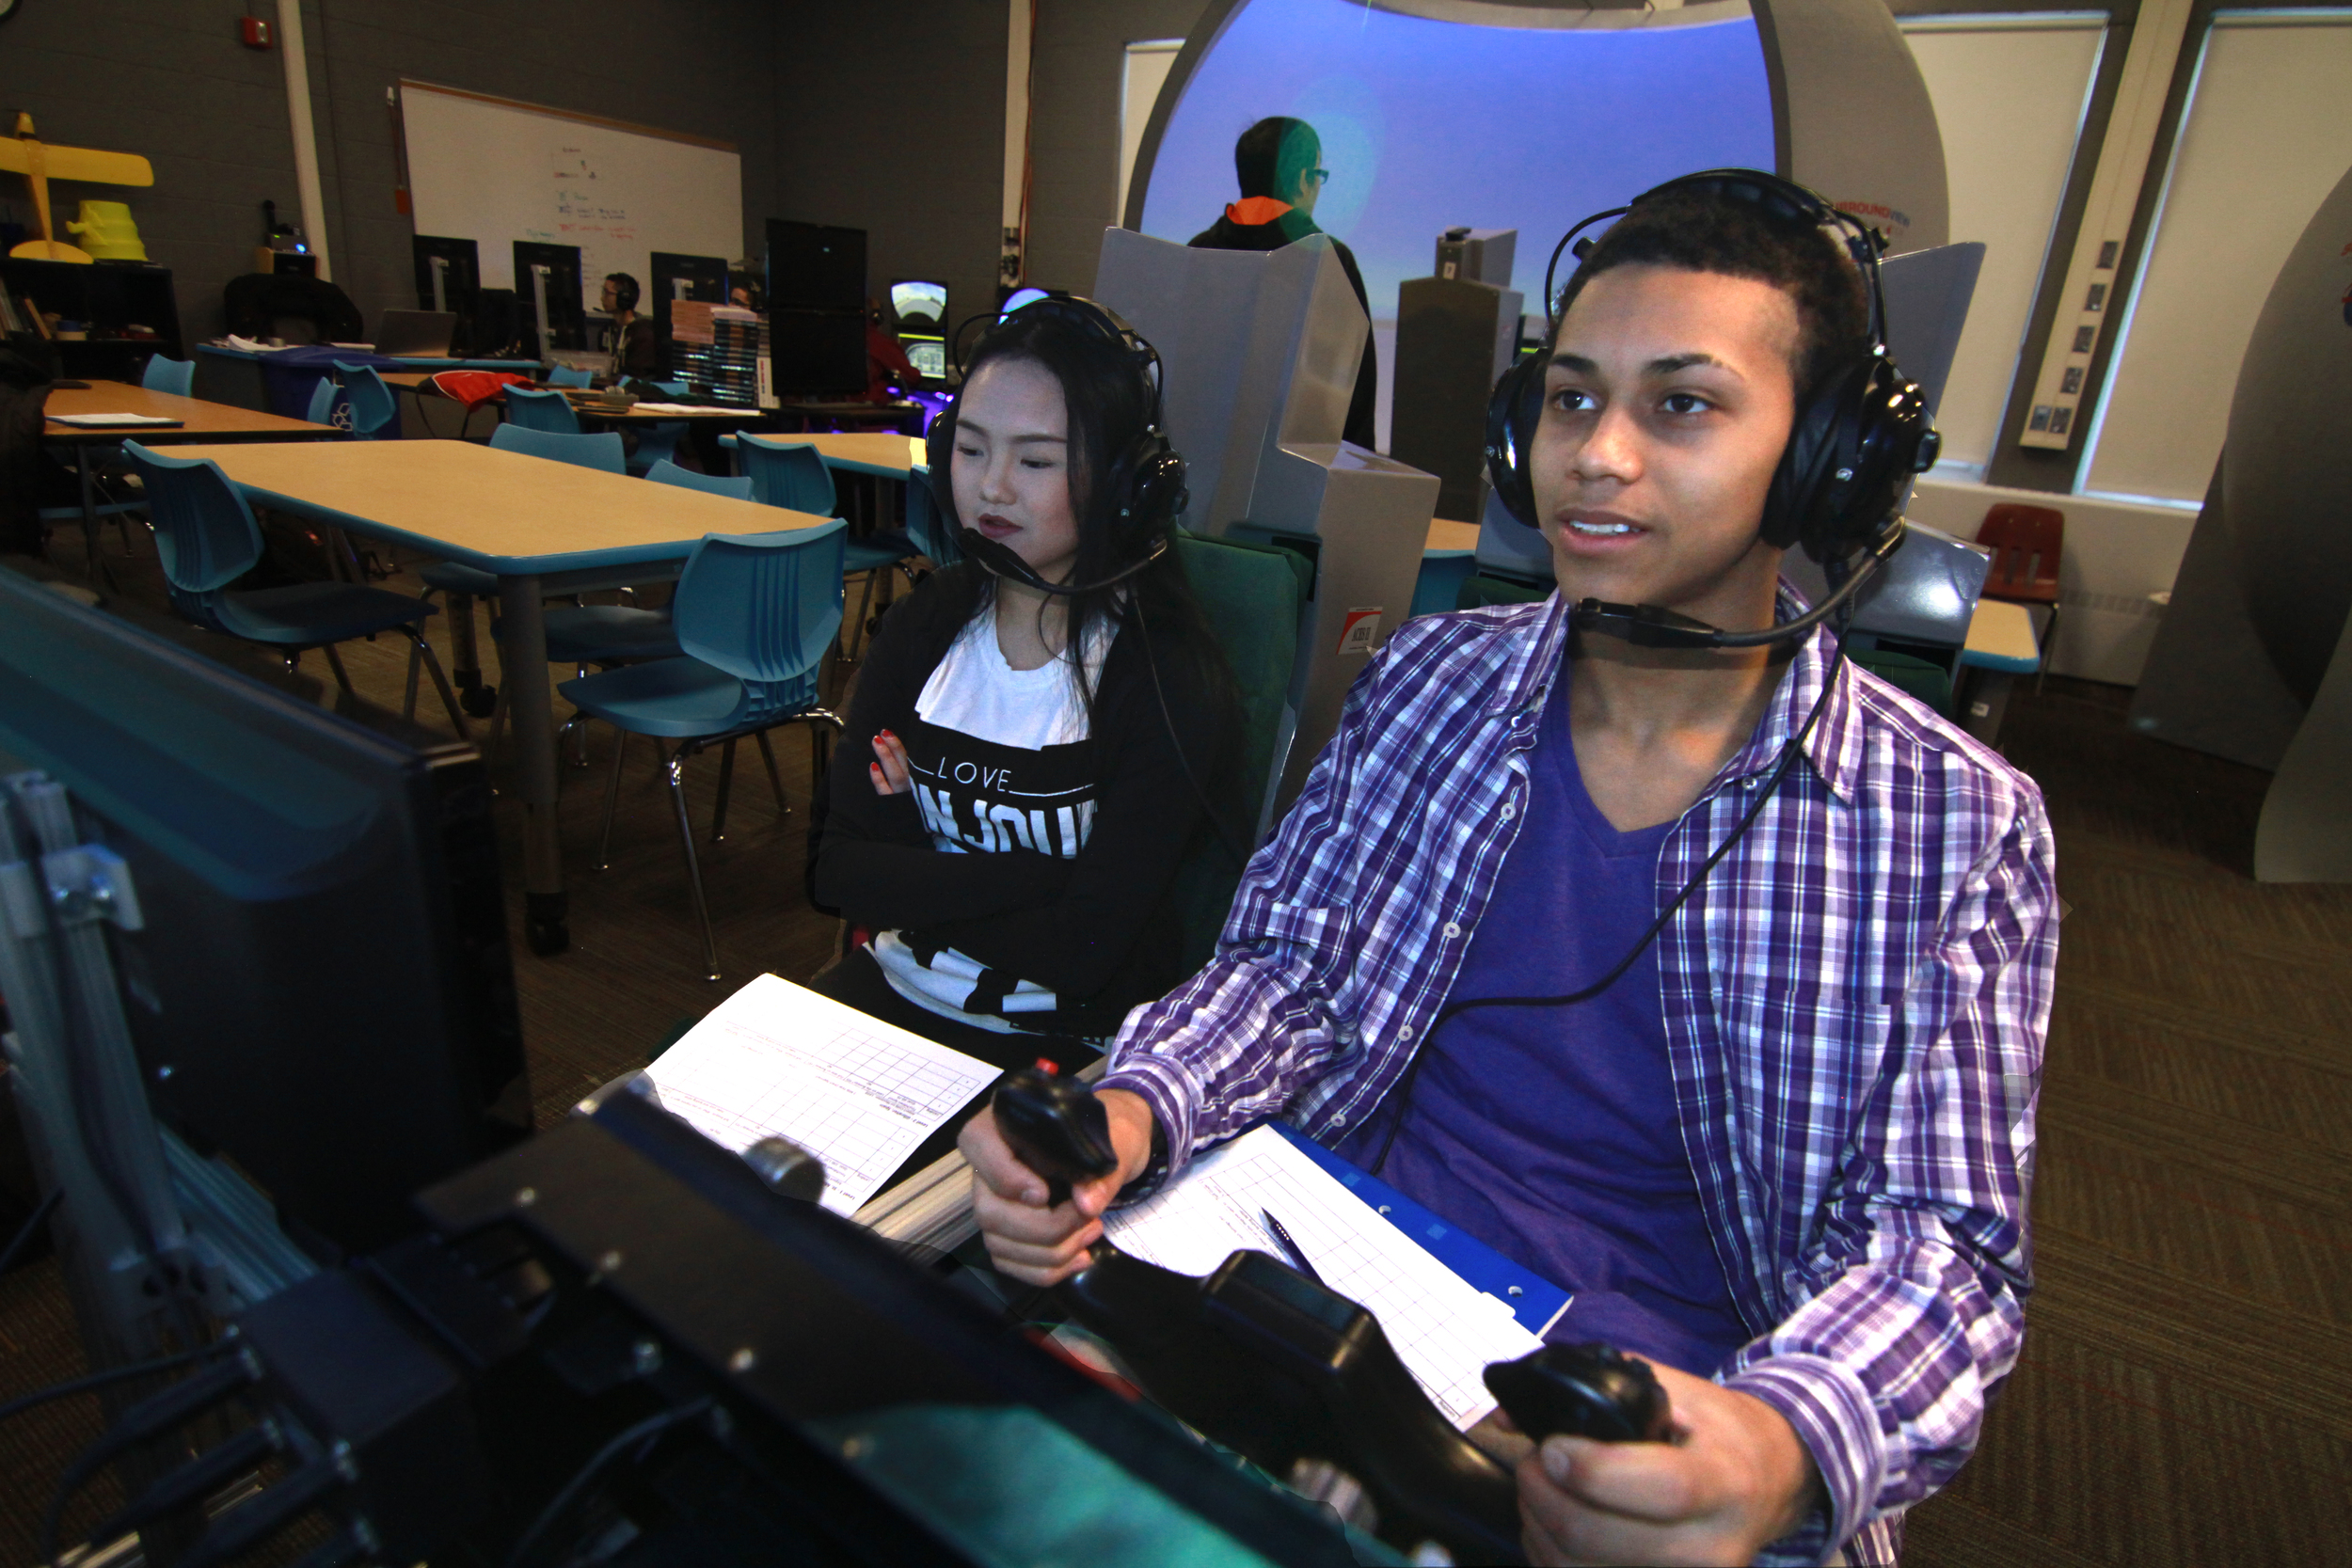 Students working together, Dual Seat Flight Simulator